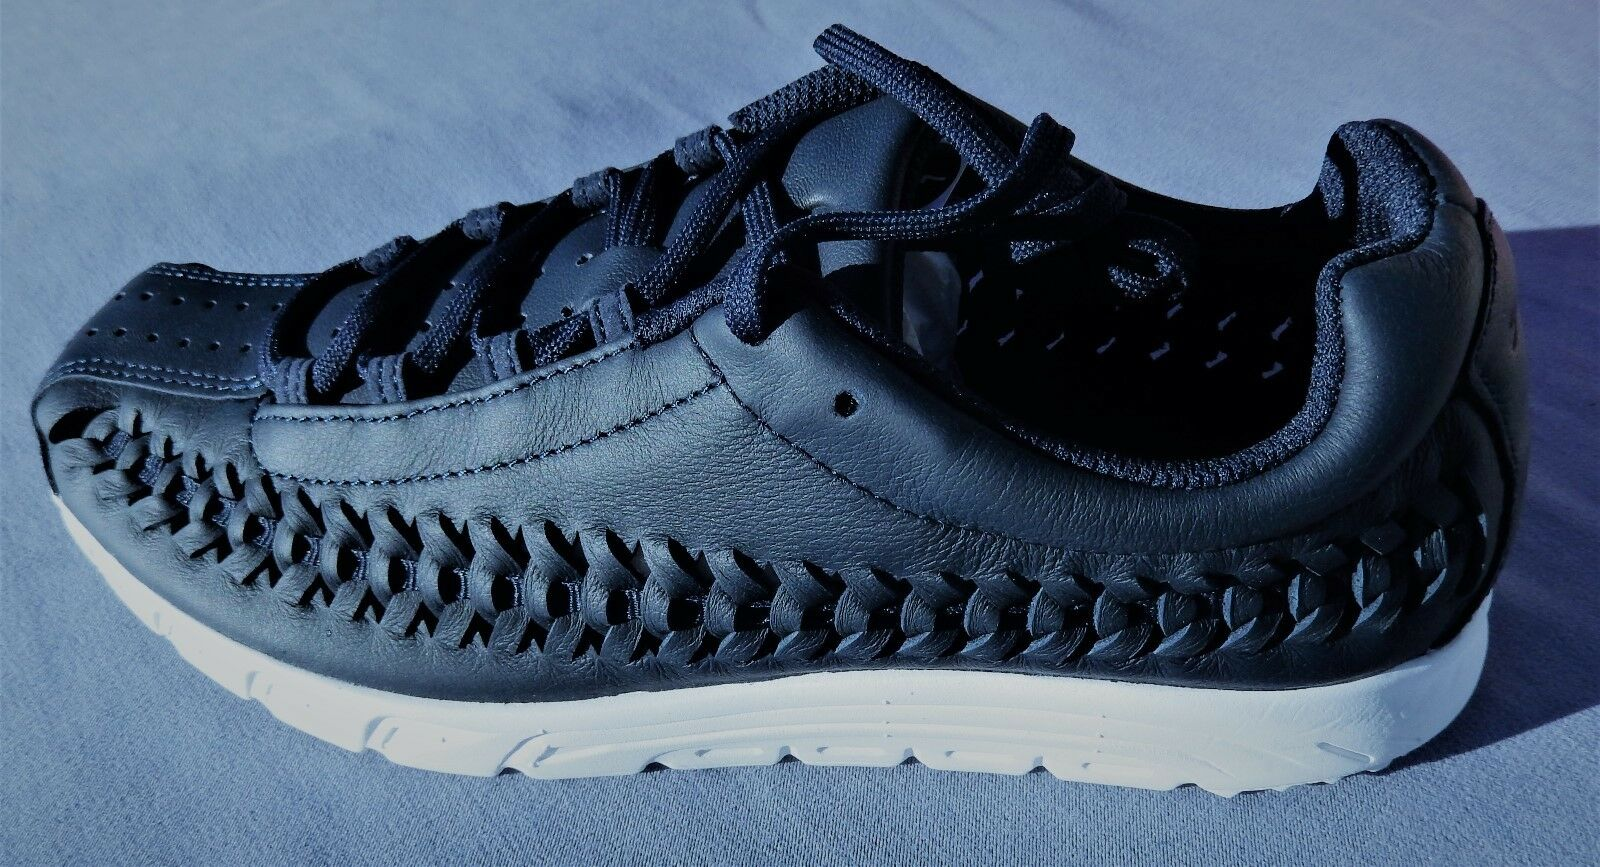 NIKE MENS MAYFLY WOVEN MULTIPLE SIZES OBSIDIAN (VERY DARK blueE) 833132-402